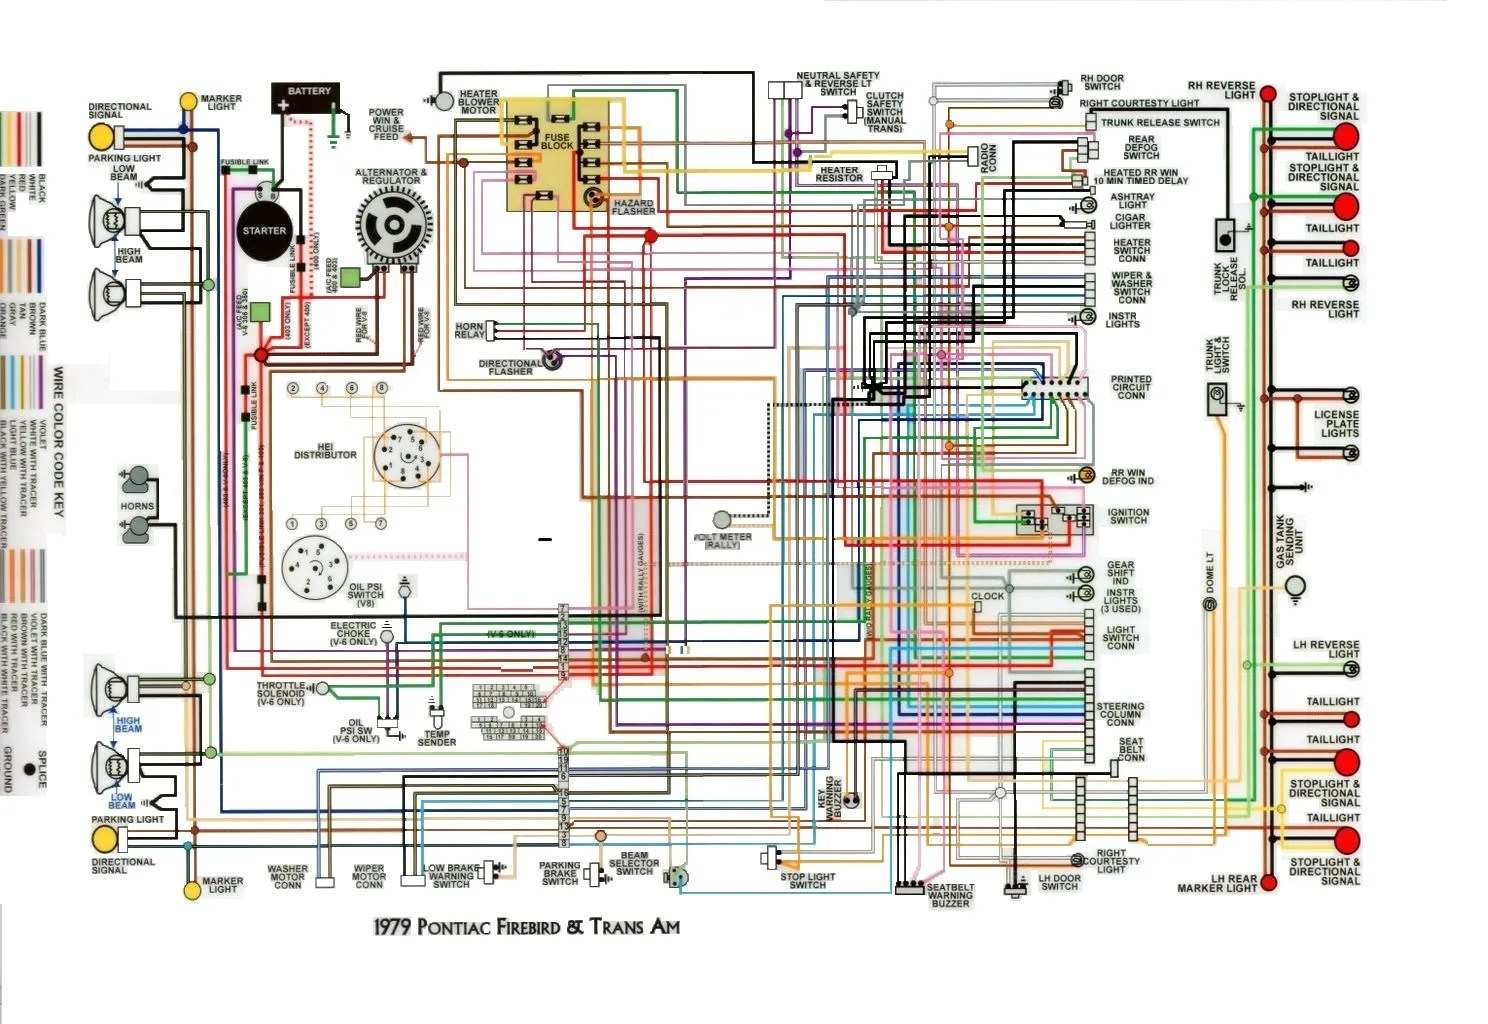 74 Jeep J10 Wiring Diagram Tail Light Online Wiring Diagram